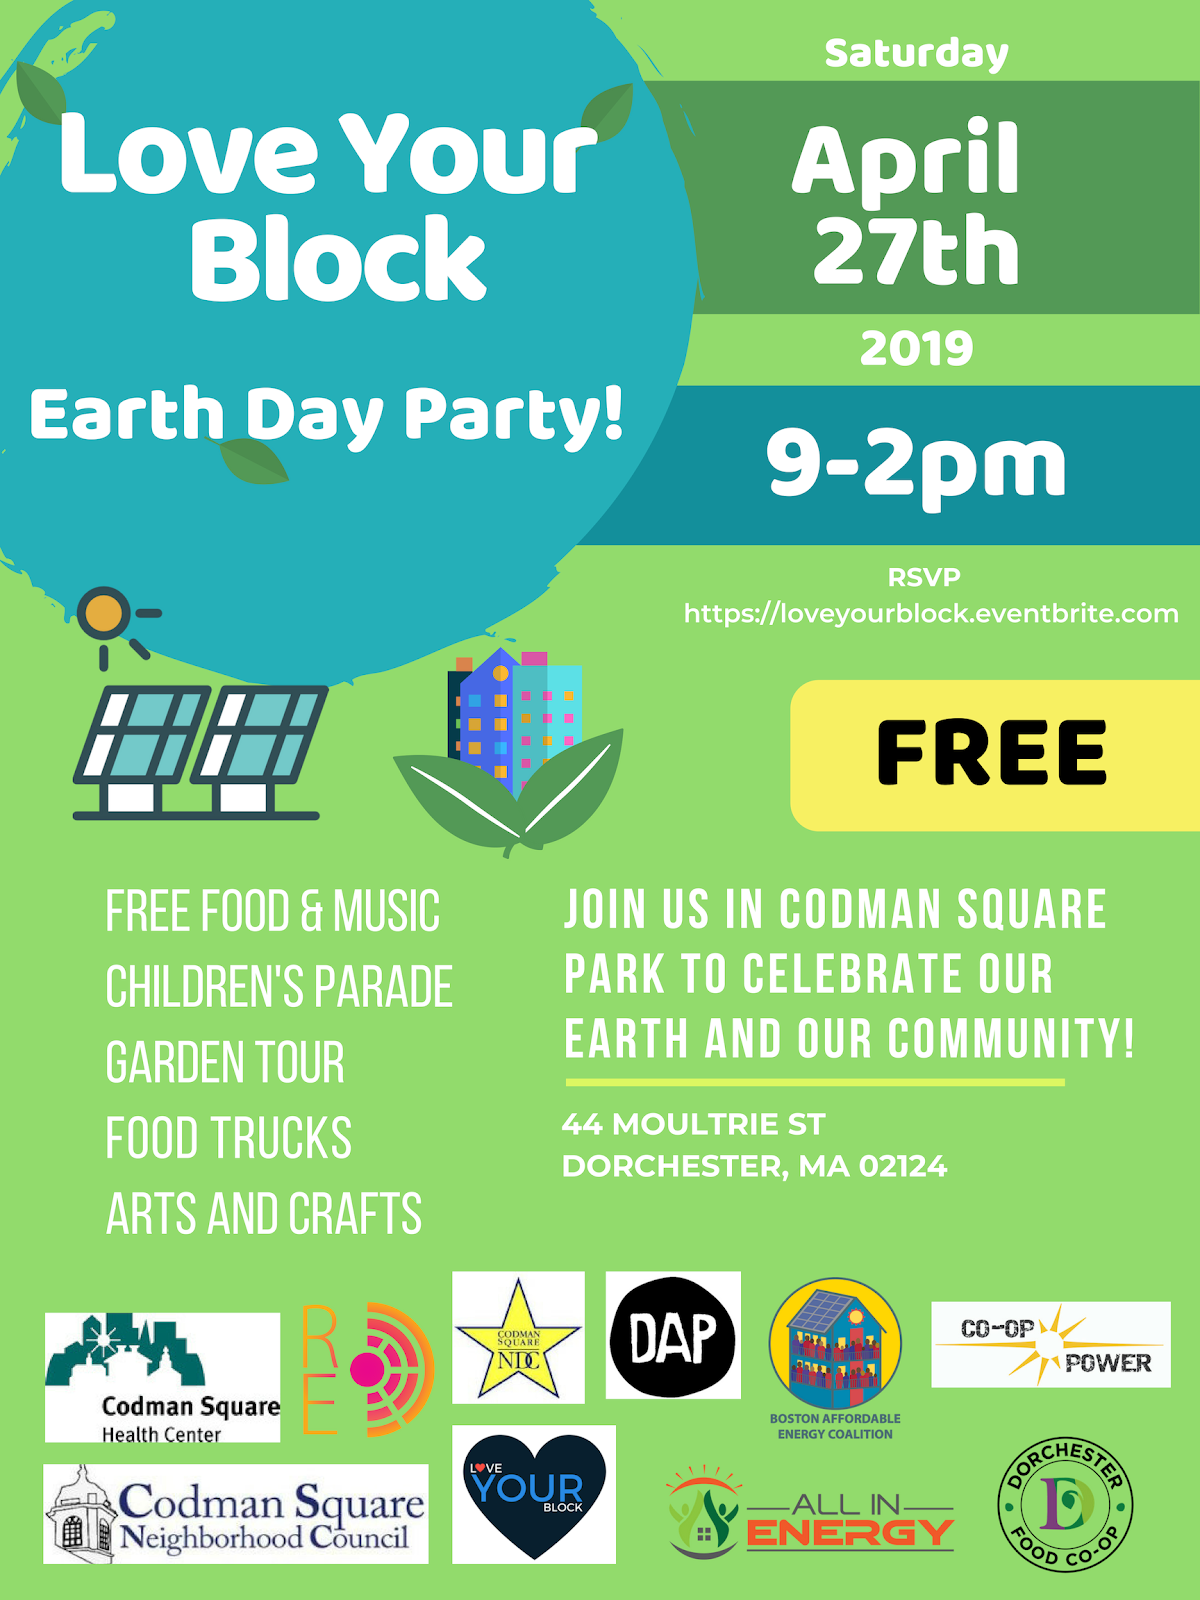 Earth-Day-Party-Codman-Square